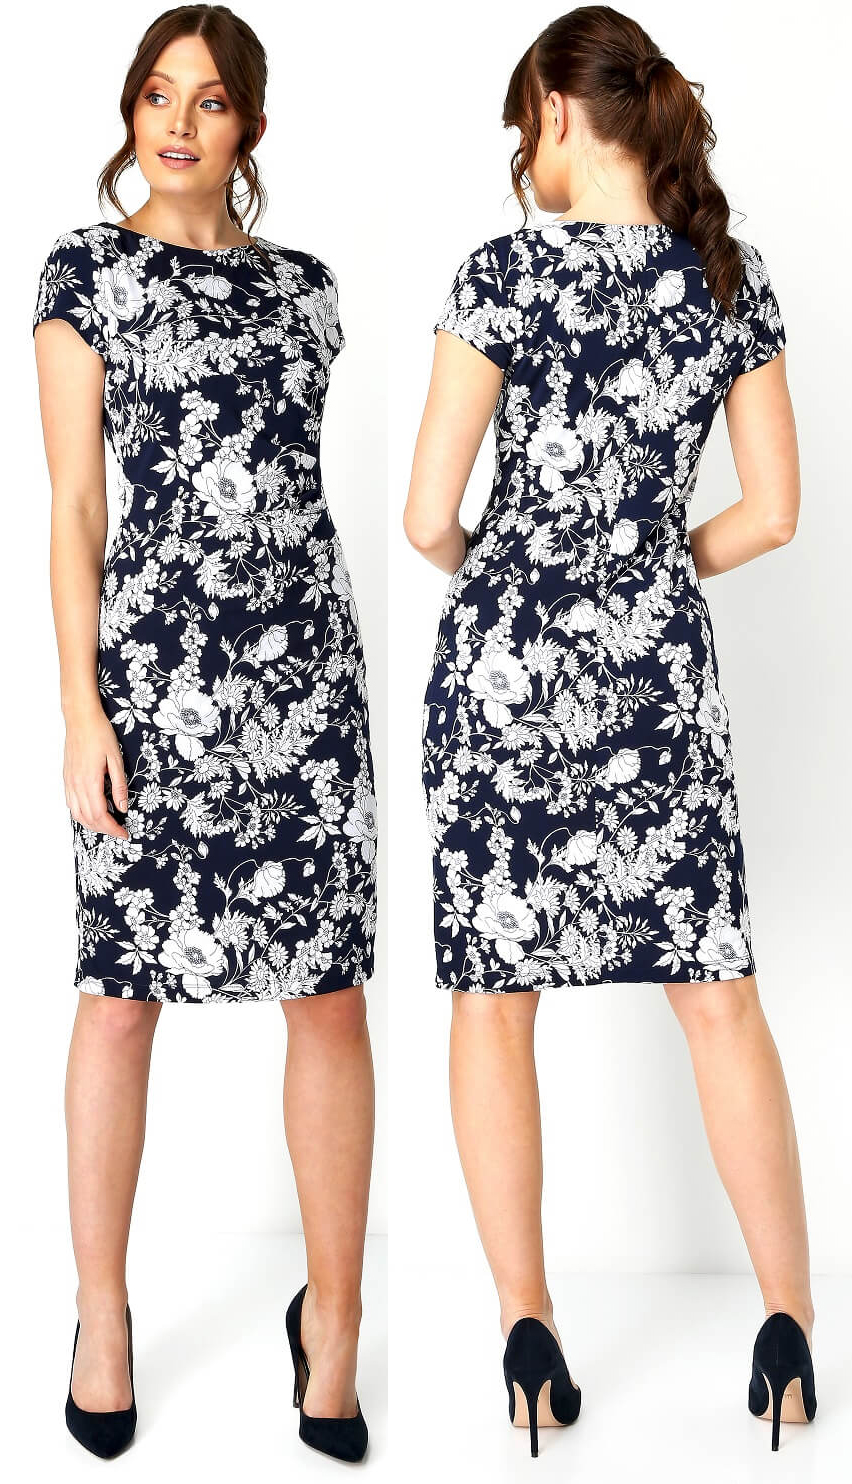 Navy and White Floral Dress 2021. Navy Dress for Royal Ascot Races 2021. What to wear for a Summer Wedding 2021. What to wear for Royal Ascot 2021. Floral Dress for Spring Summer Wedding Guest 2021. Floral Dress for Royal Ascot 2021.